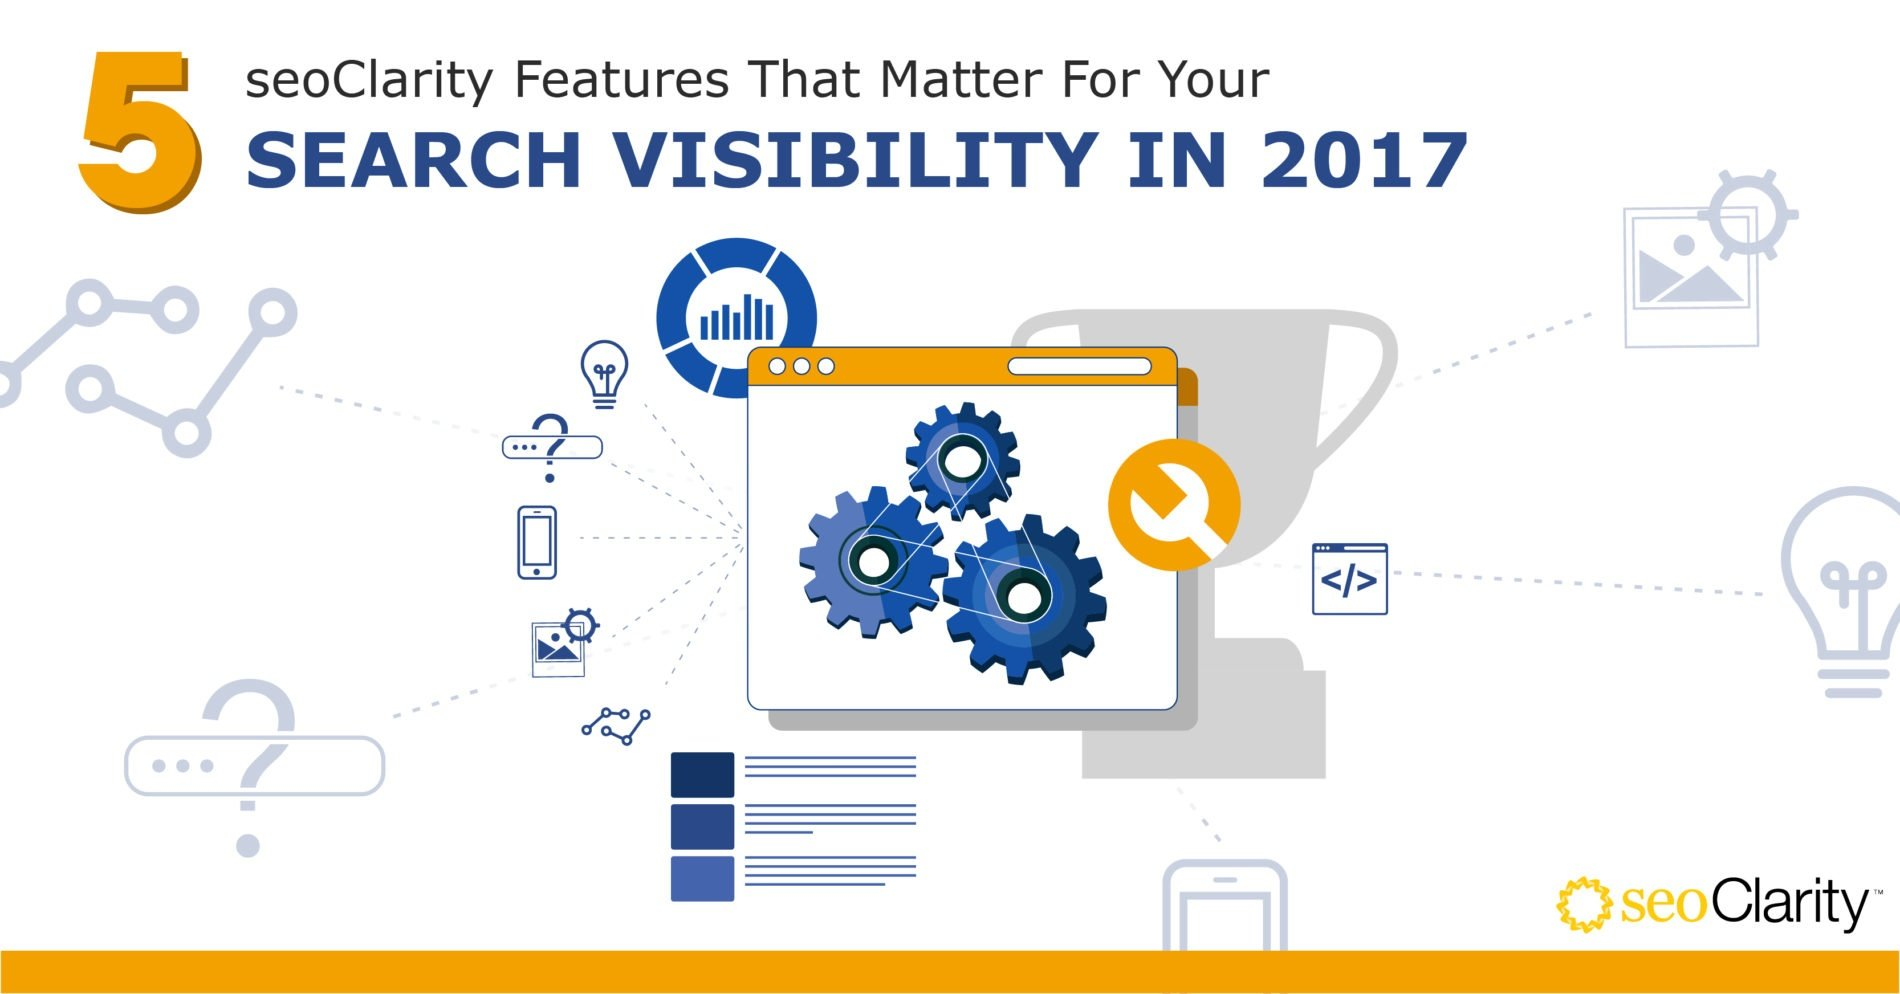 seoClarity Features that Matter to your Search Visibility in 2017 - Featured Image